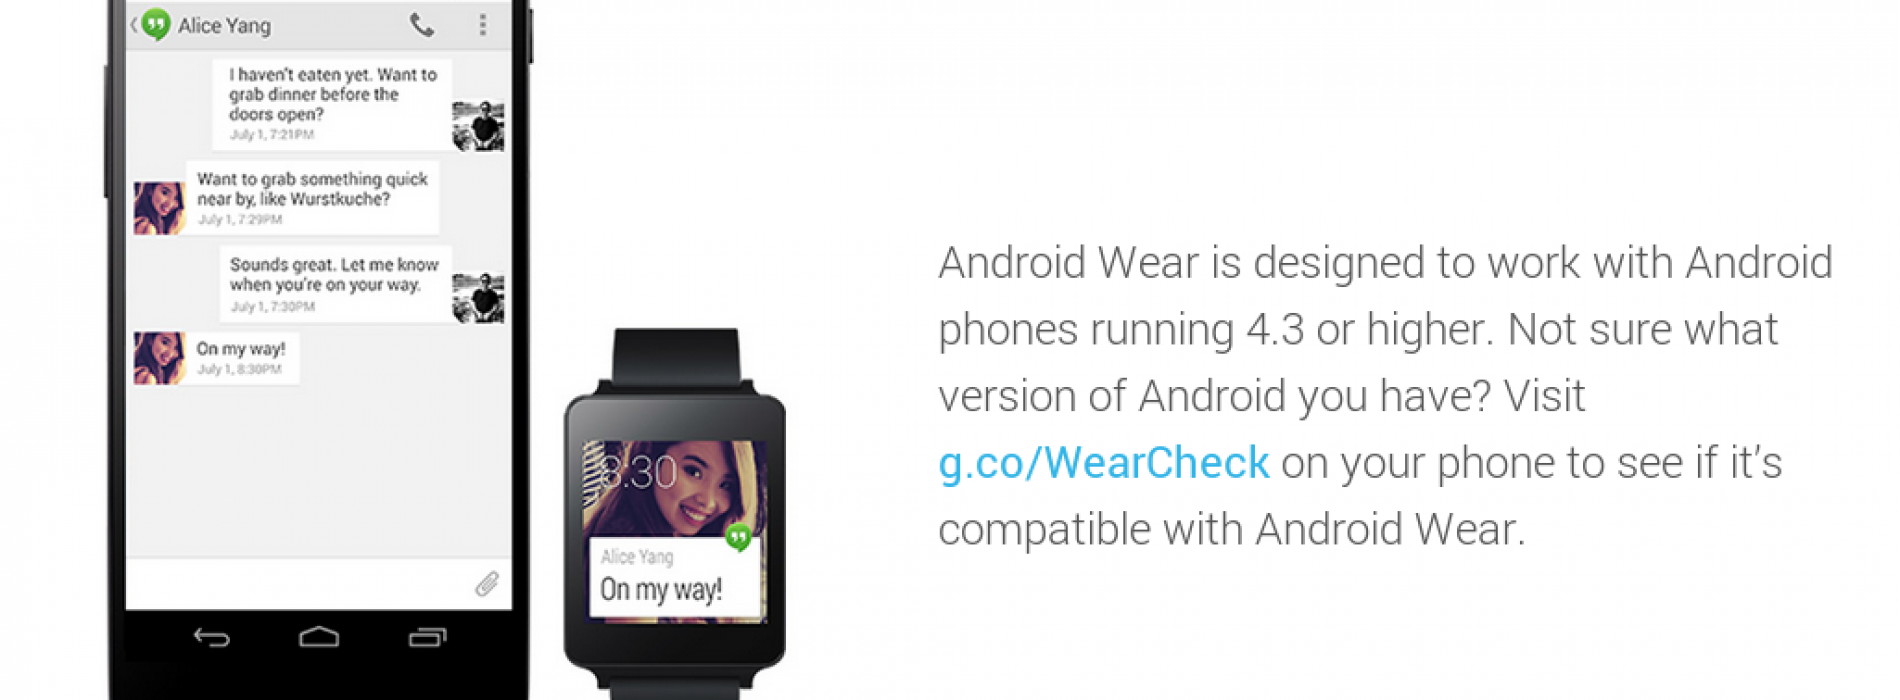 Is my Android smartphone compatible with Android Wear?